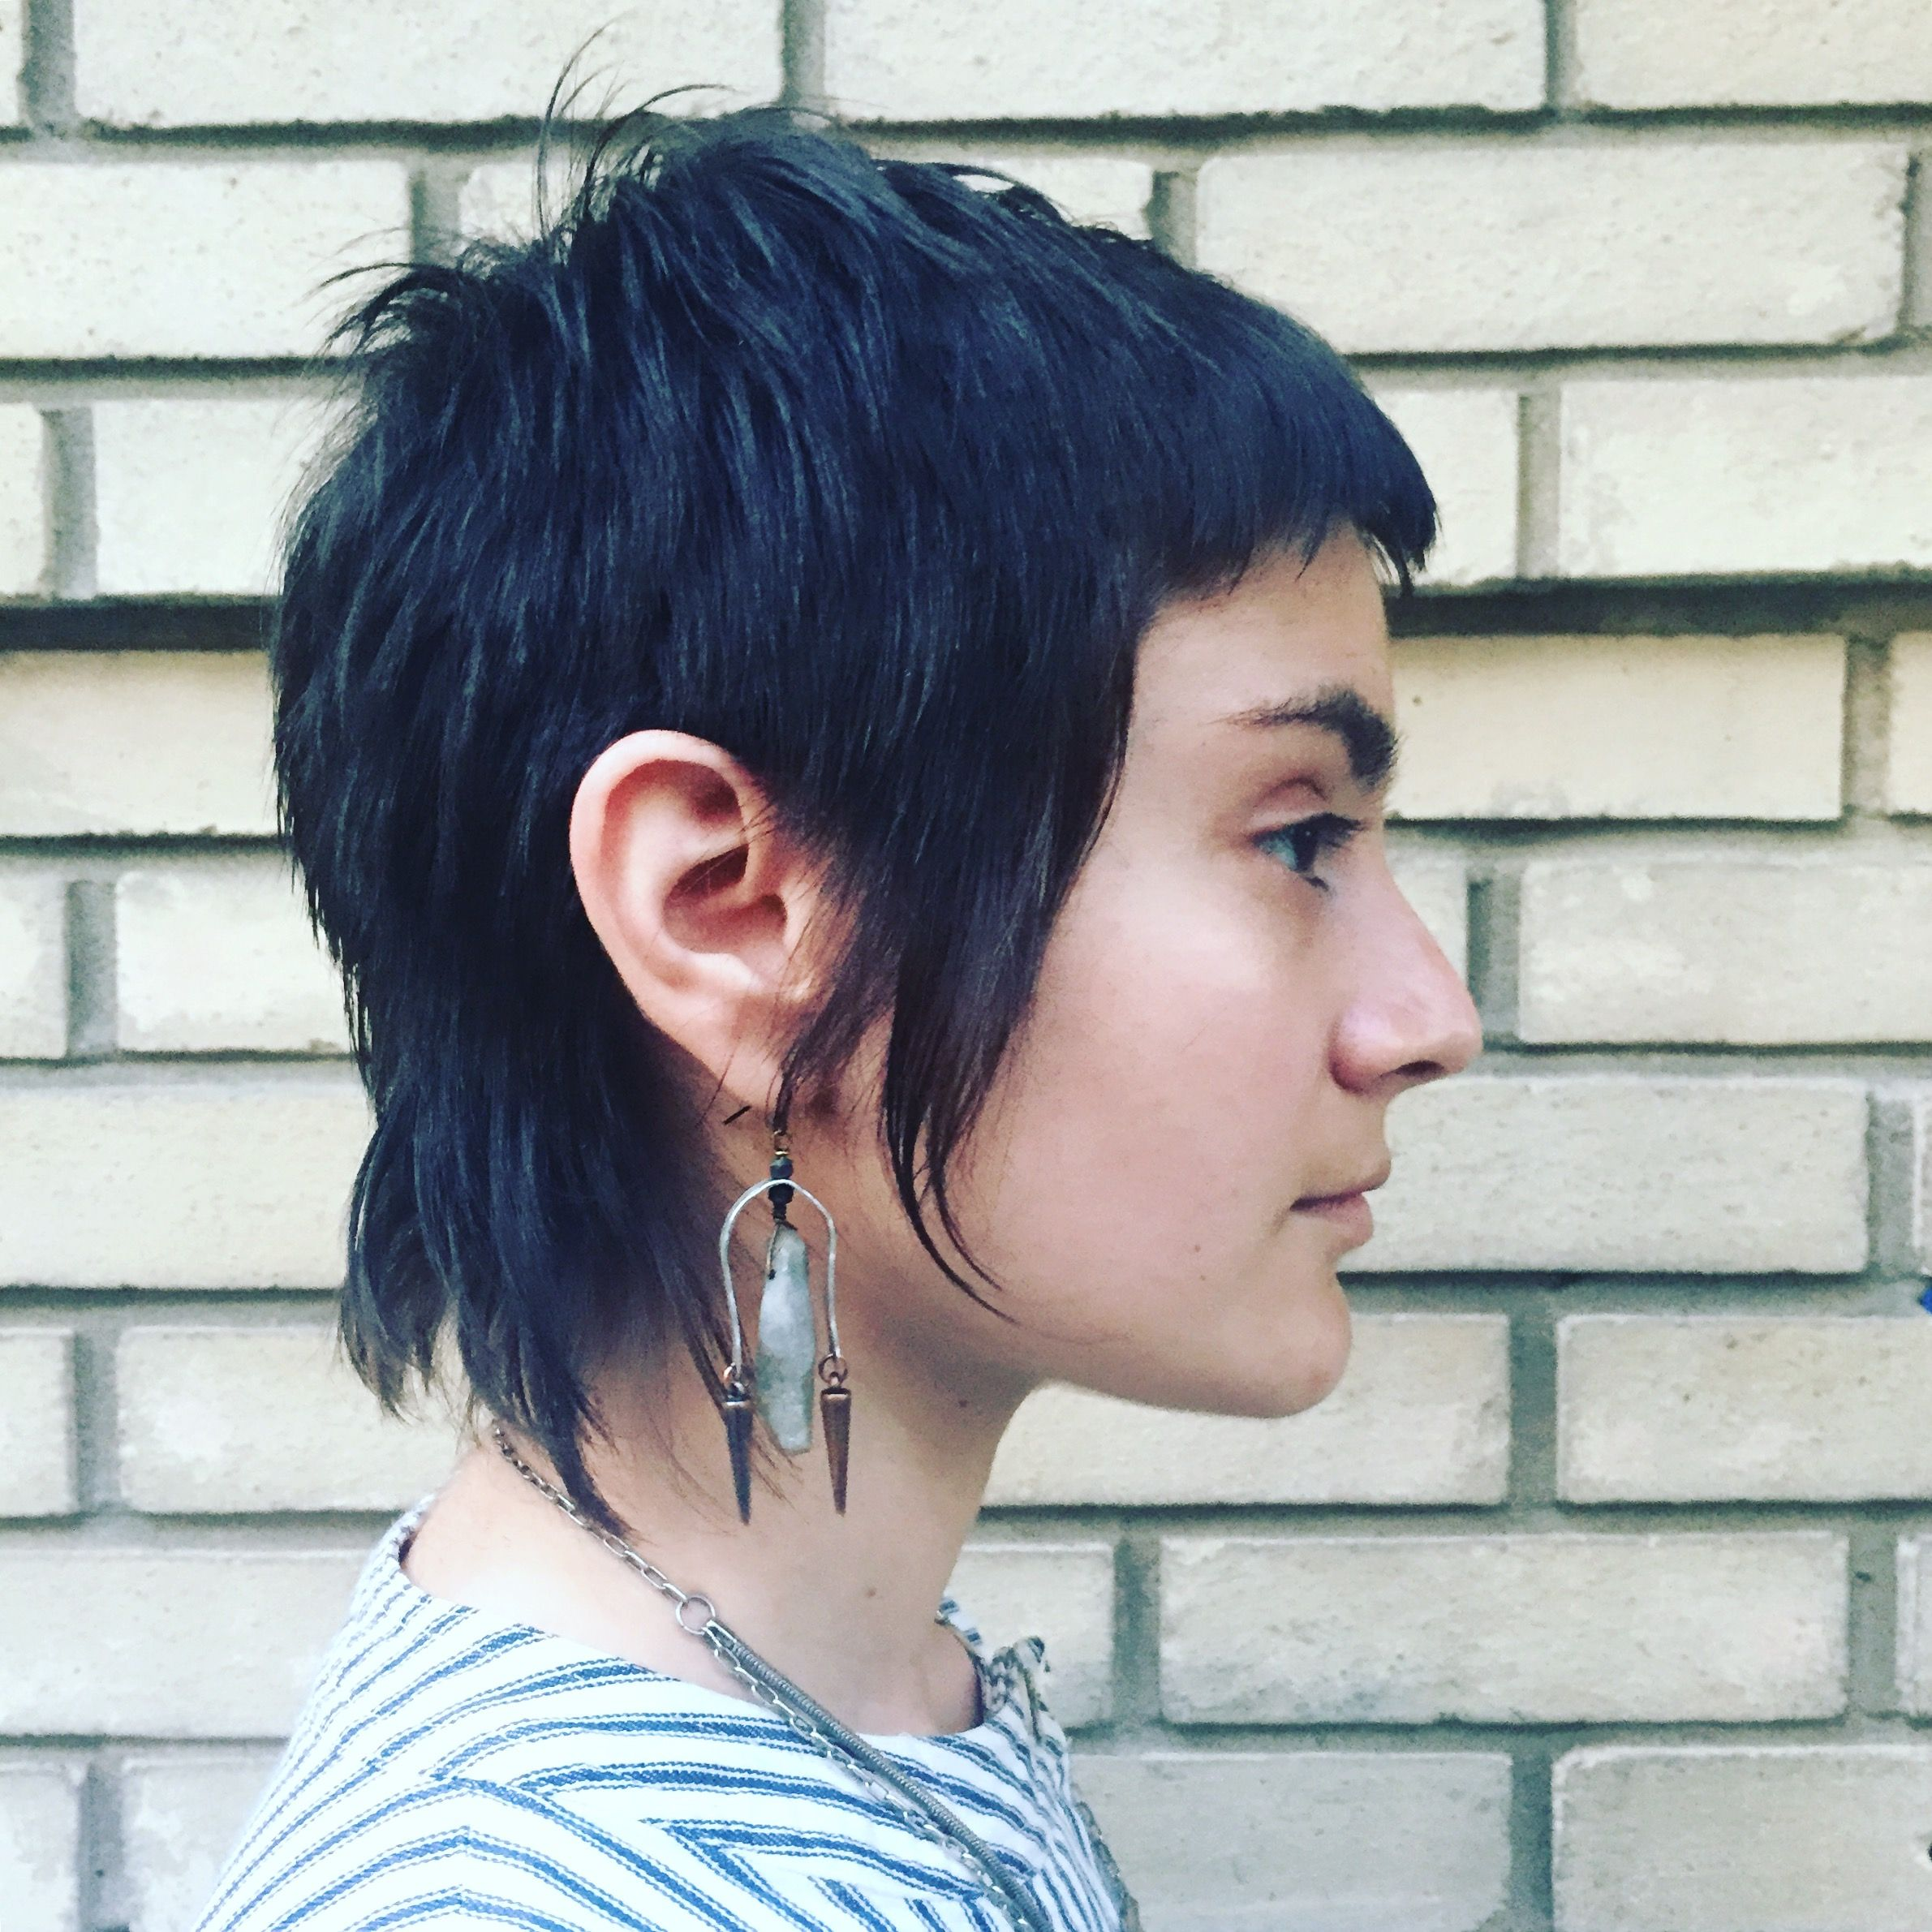 Pixie Mullet By Hairwitch Skin Makeup Hair Pinterest